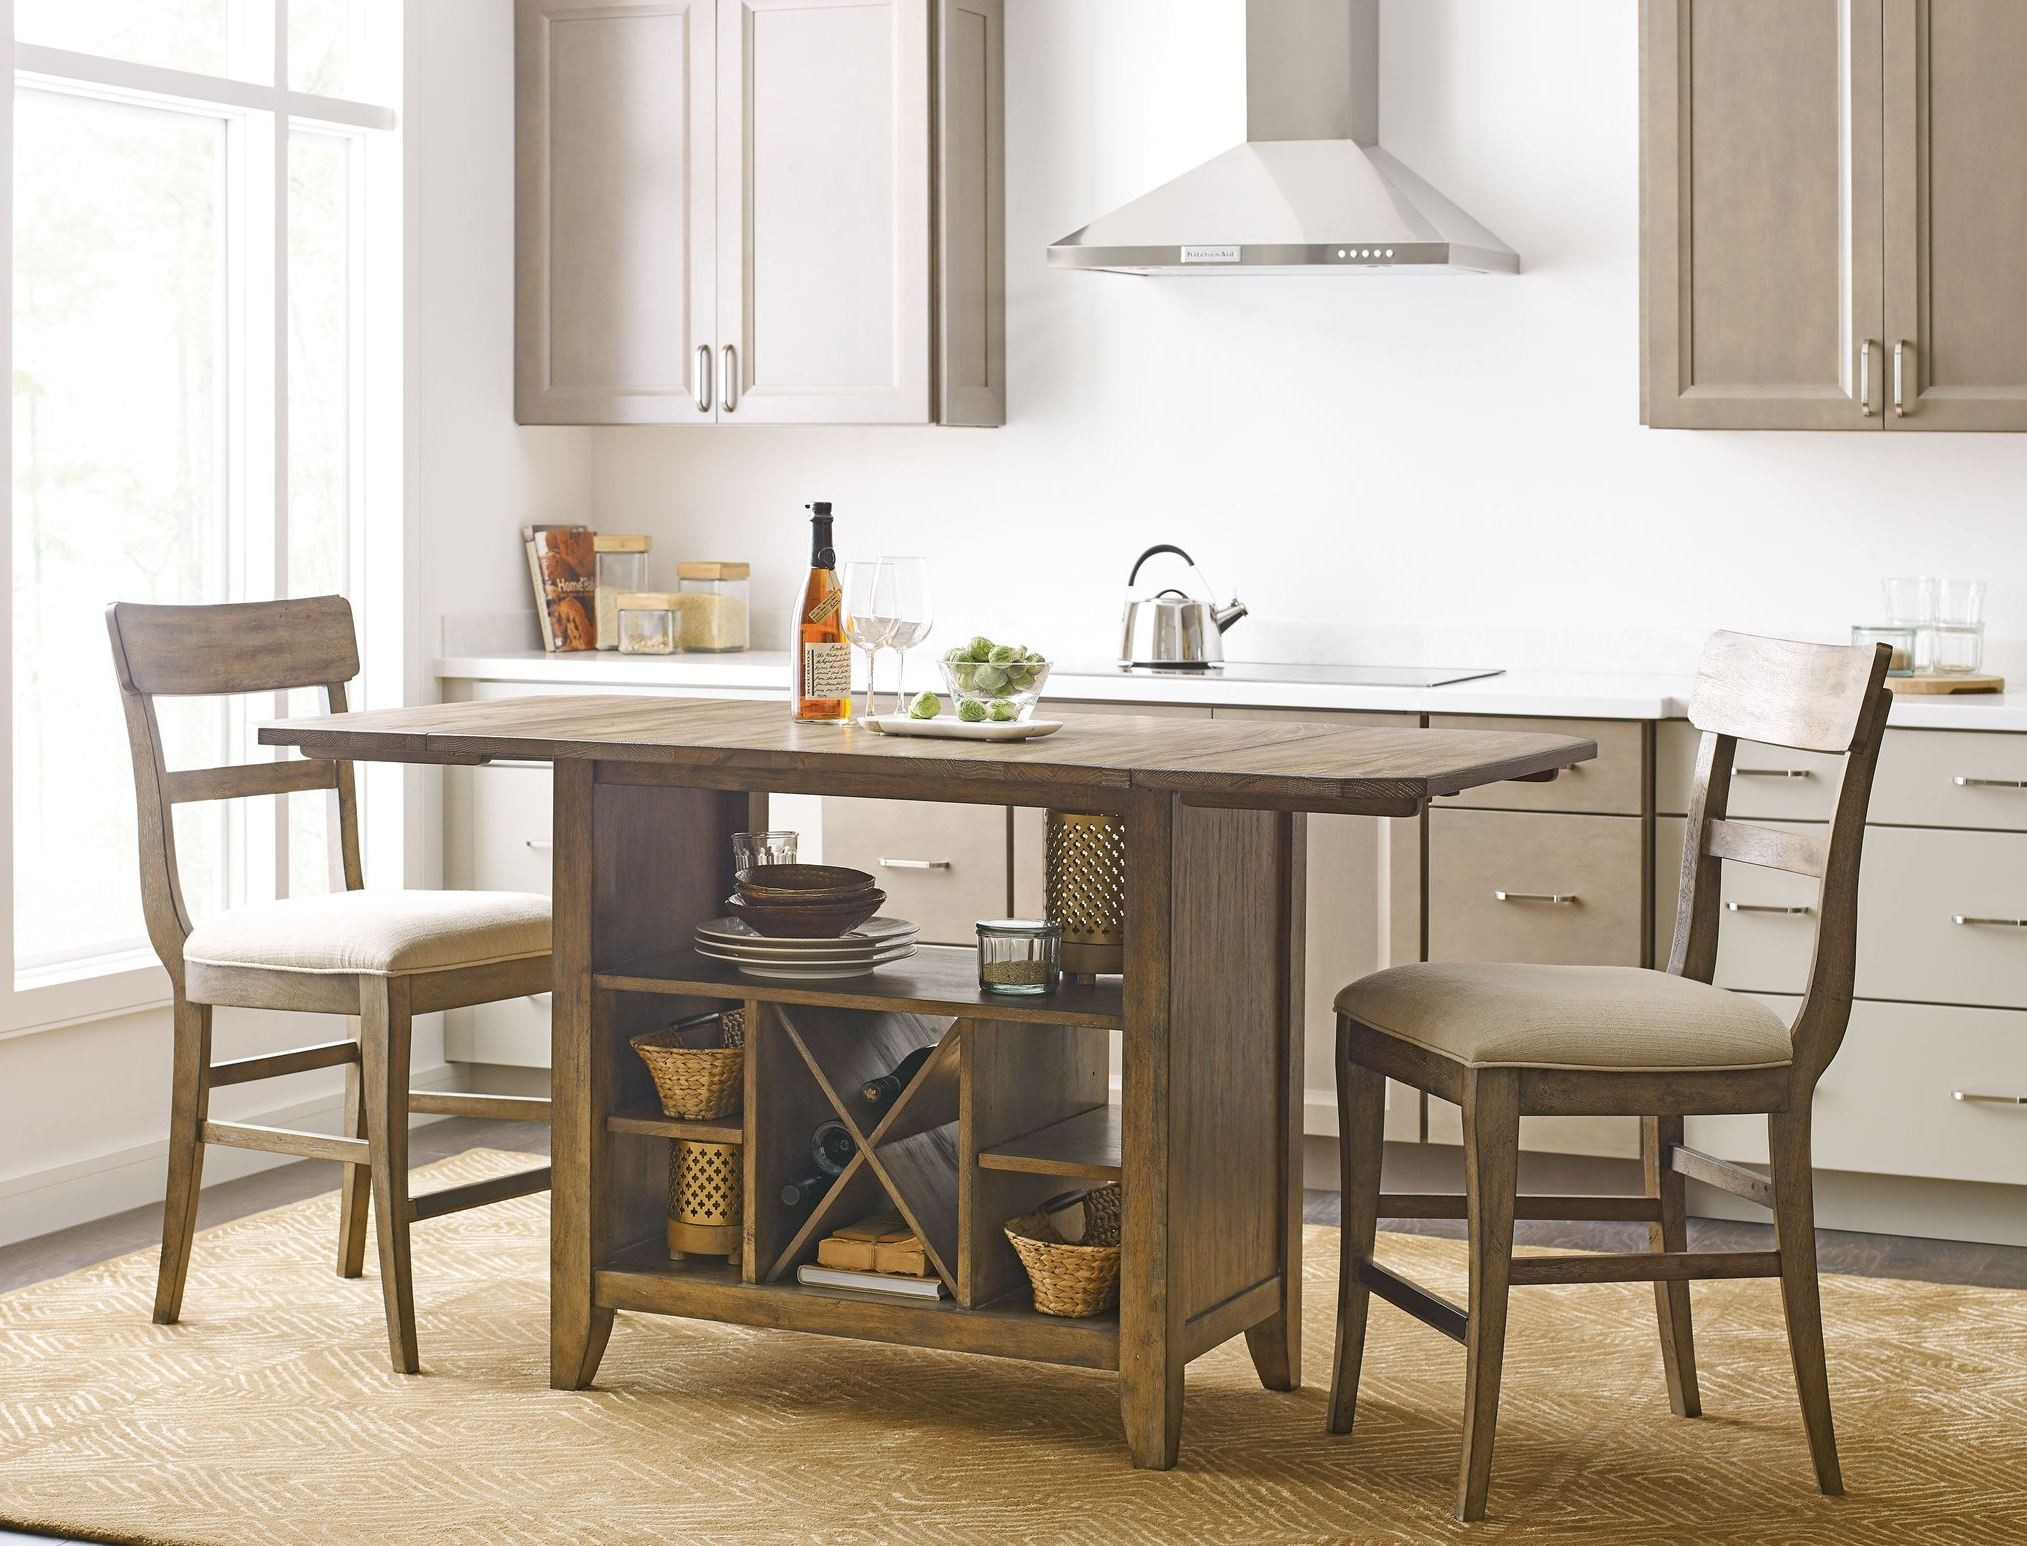 The Nook Oak Kitchen Island Set from Kincaid Furniture